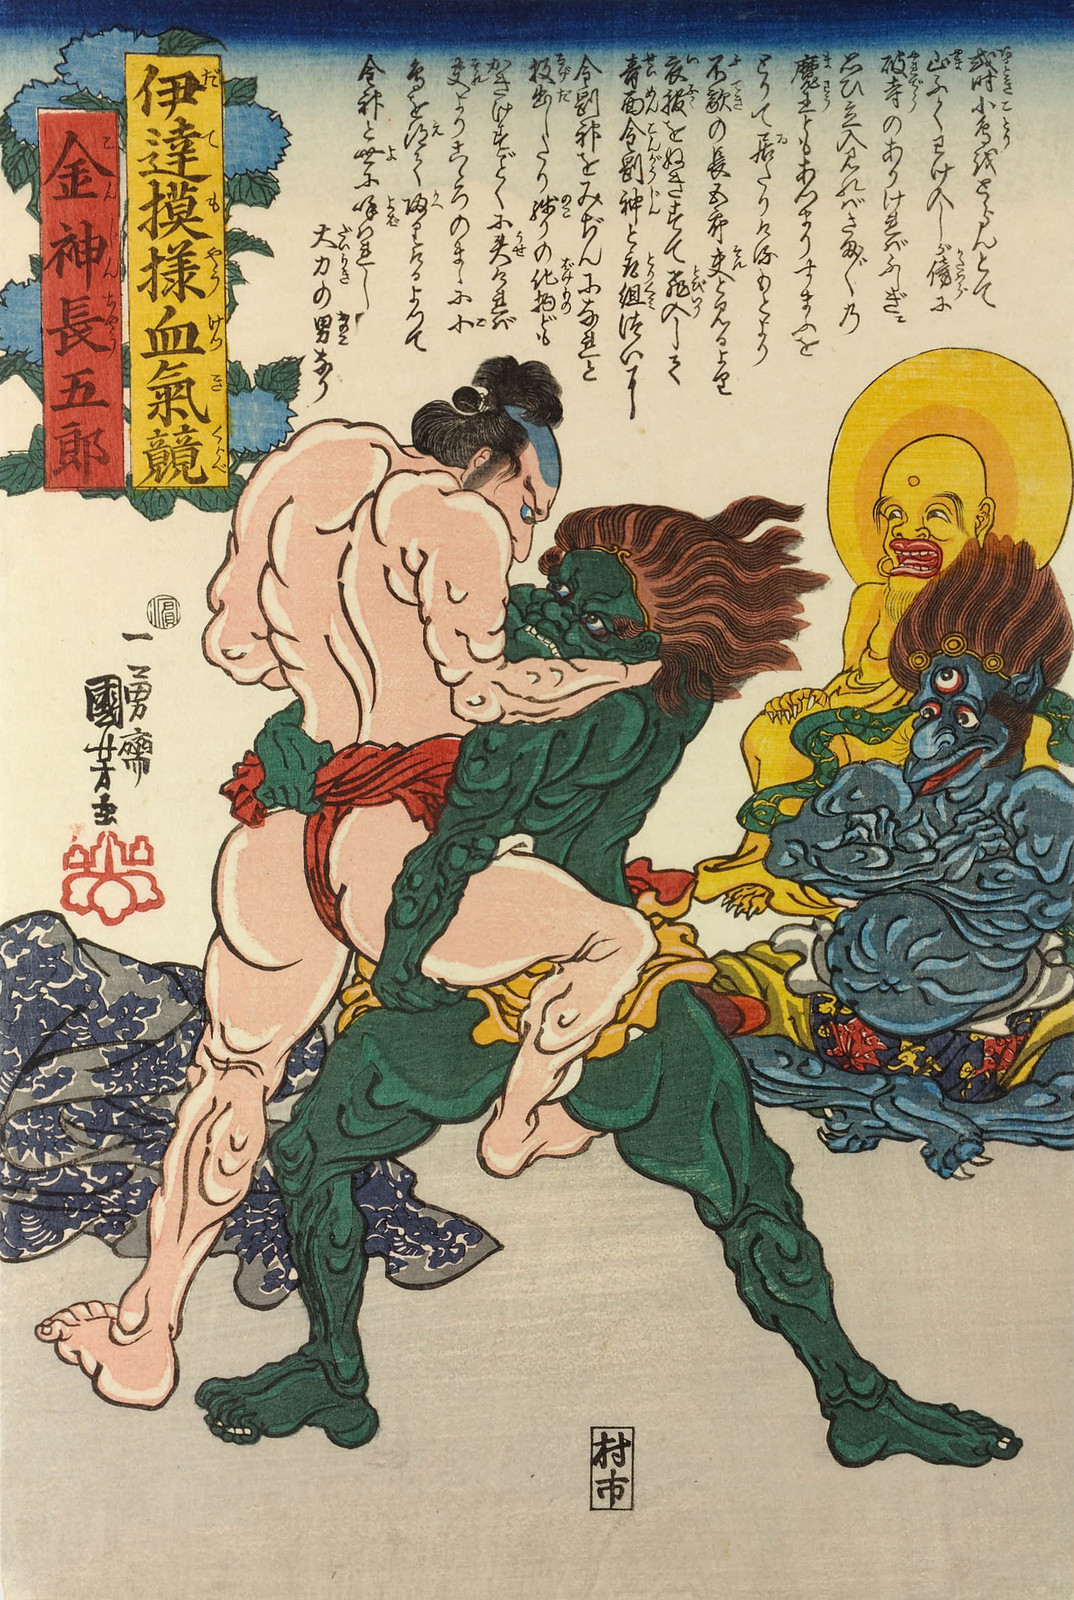 Utagawa Kuniyoshi - Konjin Chôgorô, from the series Contest of Hot-blooded Heroes in Bold Patterns (Date moyô kekki kurabe) 1845-46